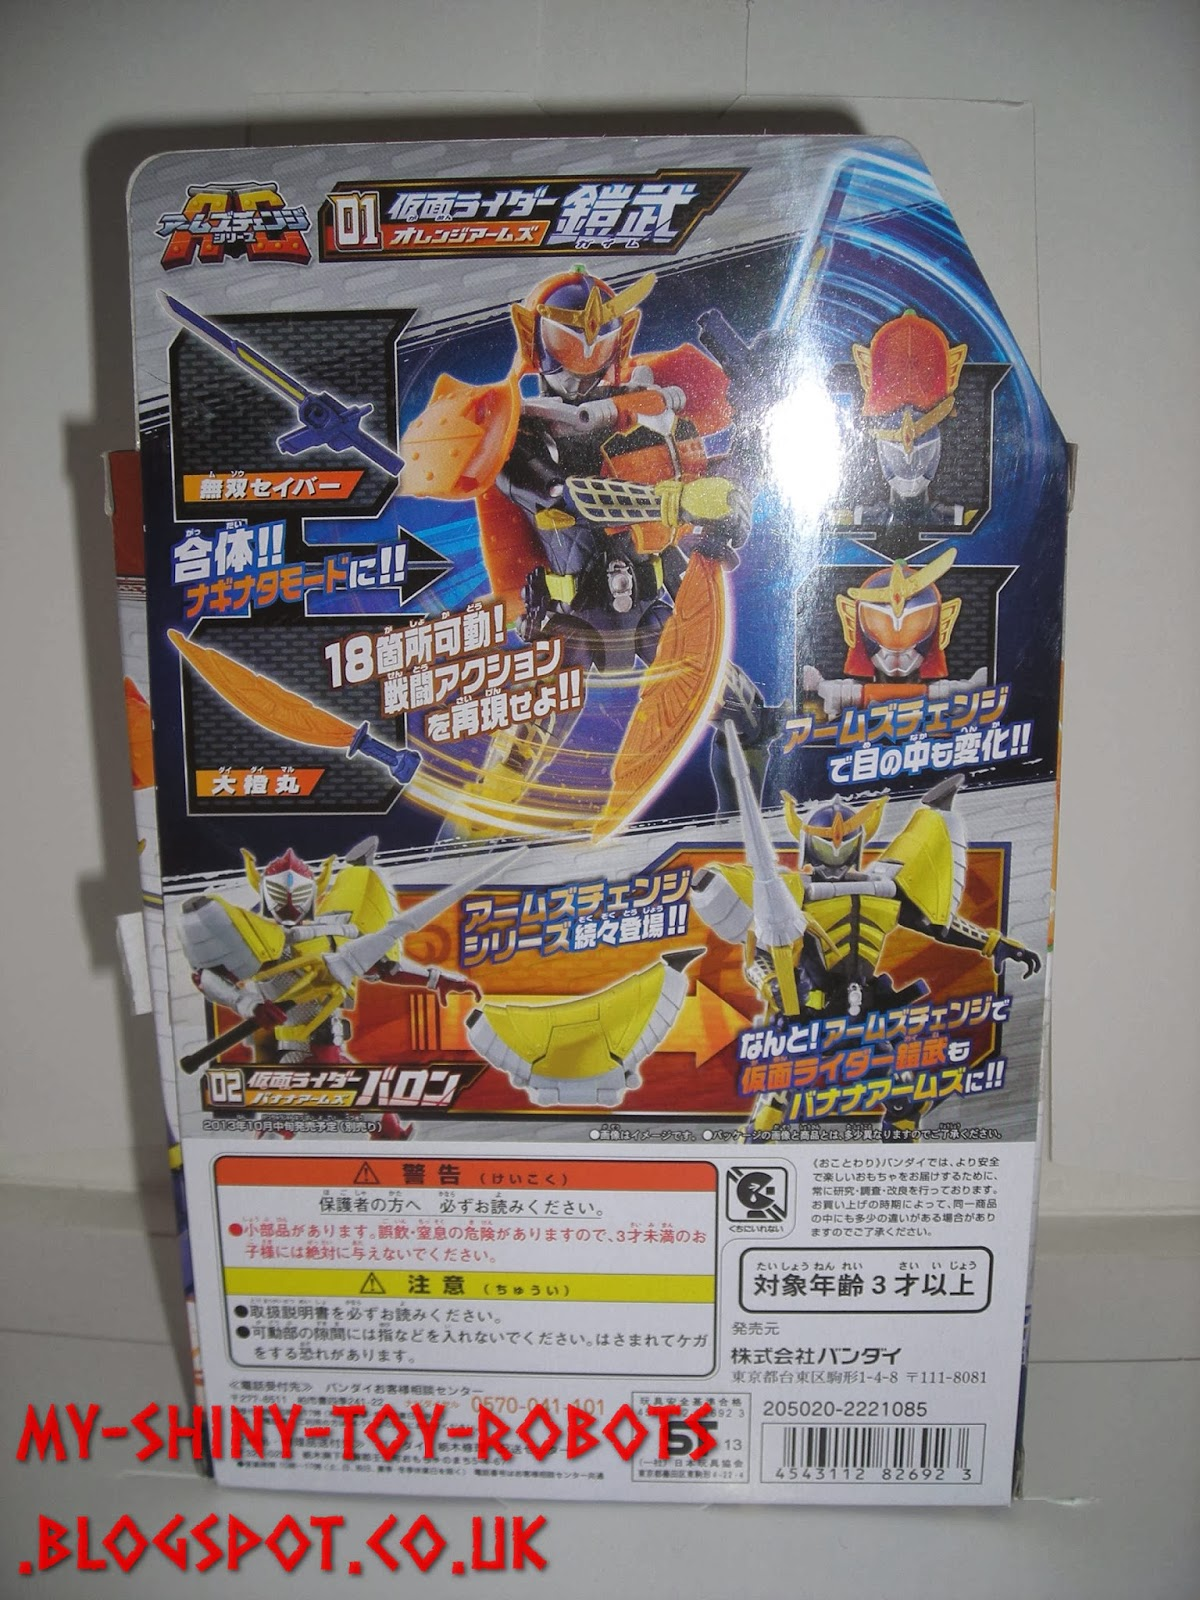 And here's the back of Gaim's box